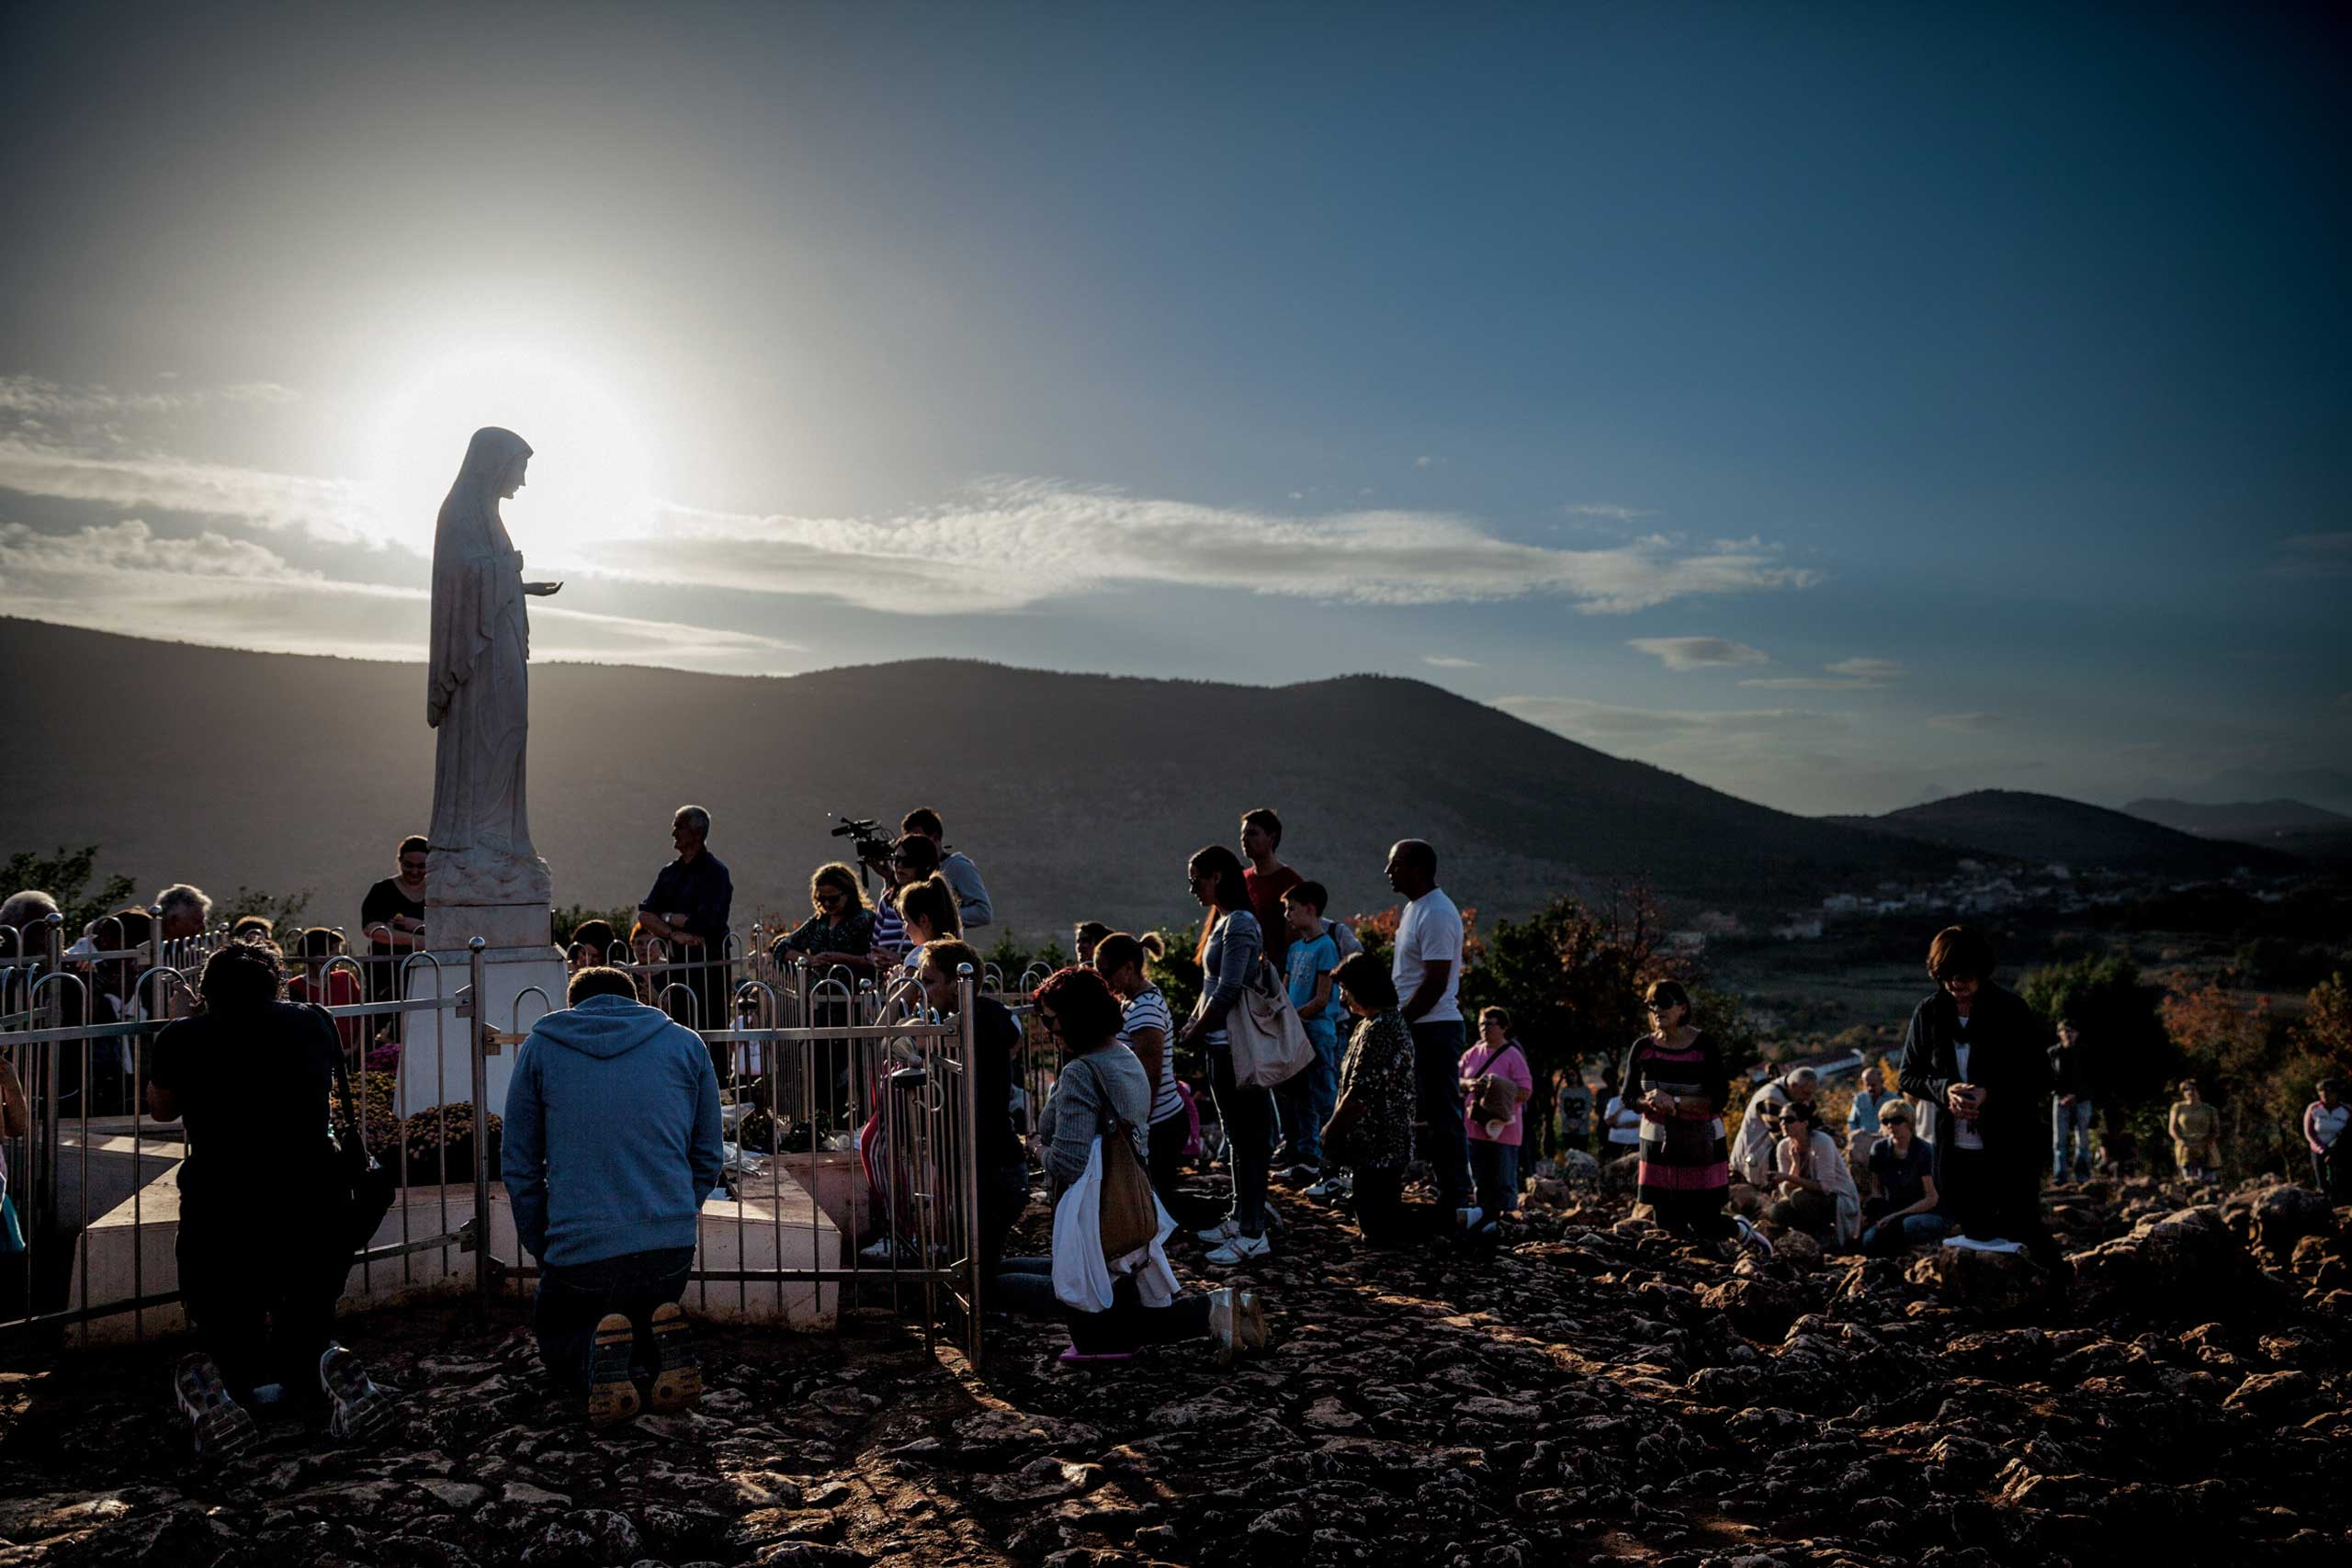 From National Geographic Magazine's December issue: How the Virgin Mary Became the World's Most Powerful WomanAs the sun sets in Medjugorje, Bosnia and Herzegovina—a hot spot for Virgin Mary sightings—devotees of diverse faiths and nationalities gather to pray.